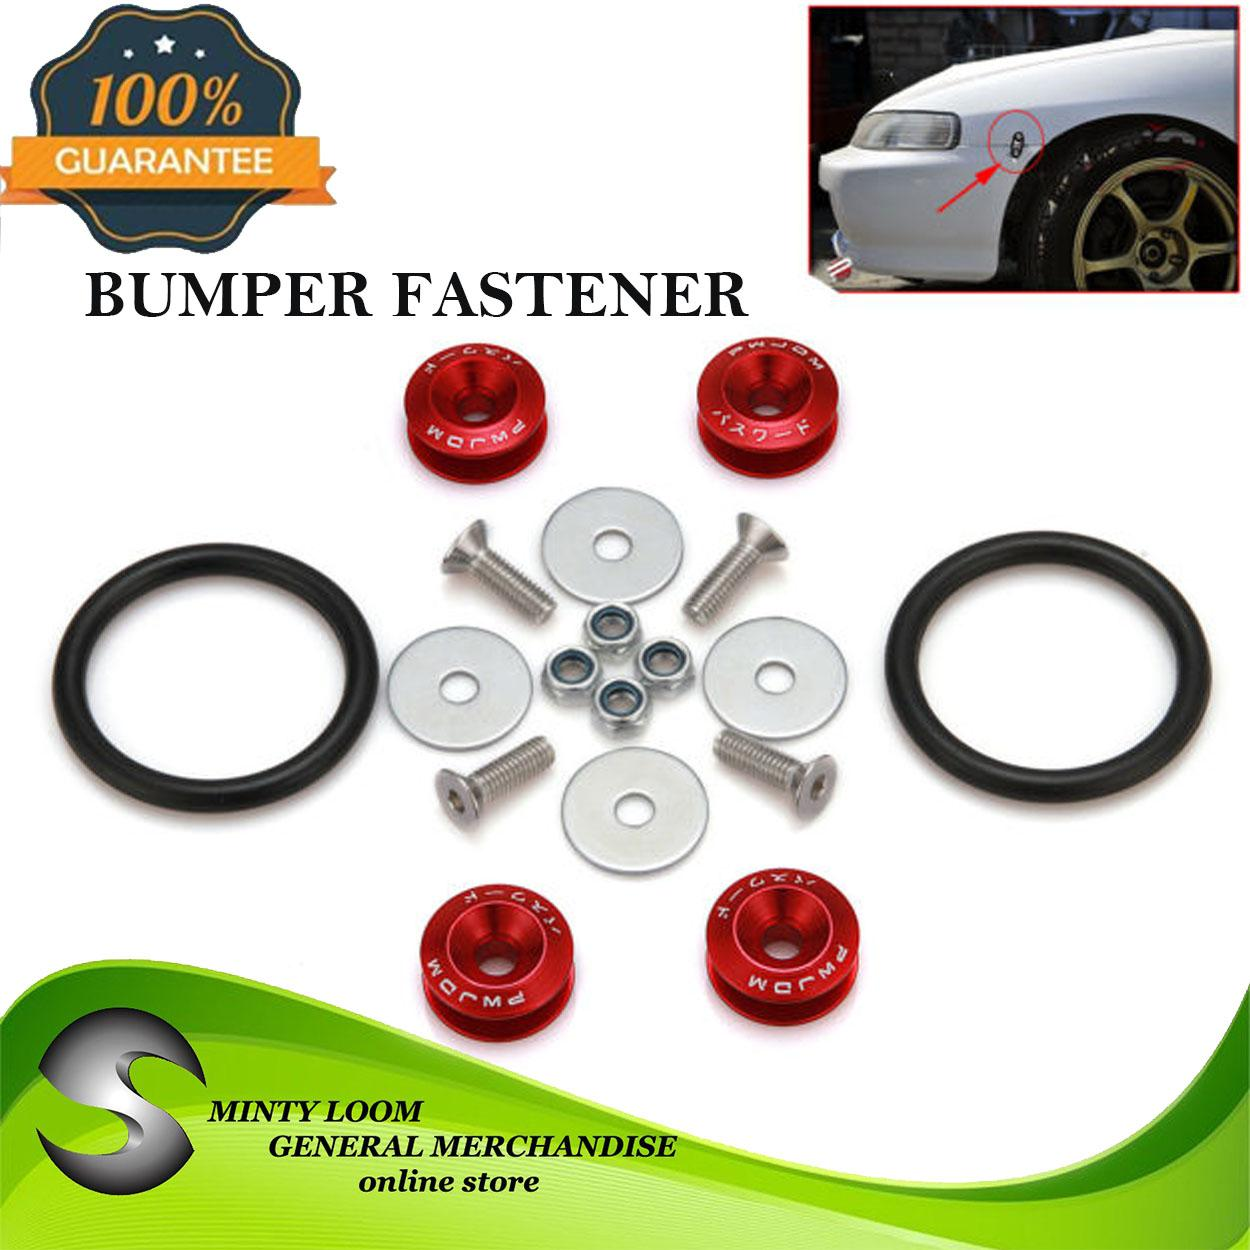 Jdm Password Bumper Fastener(red) By Minty Loom General Merchandise.